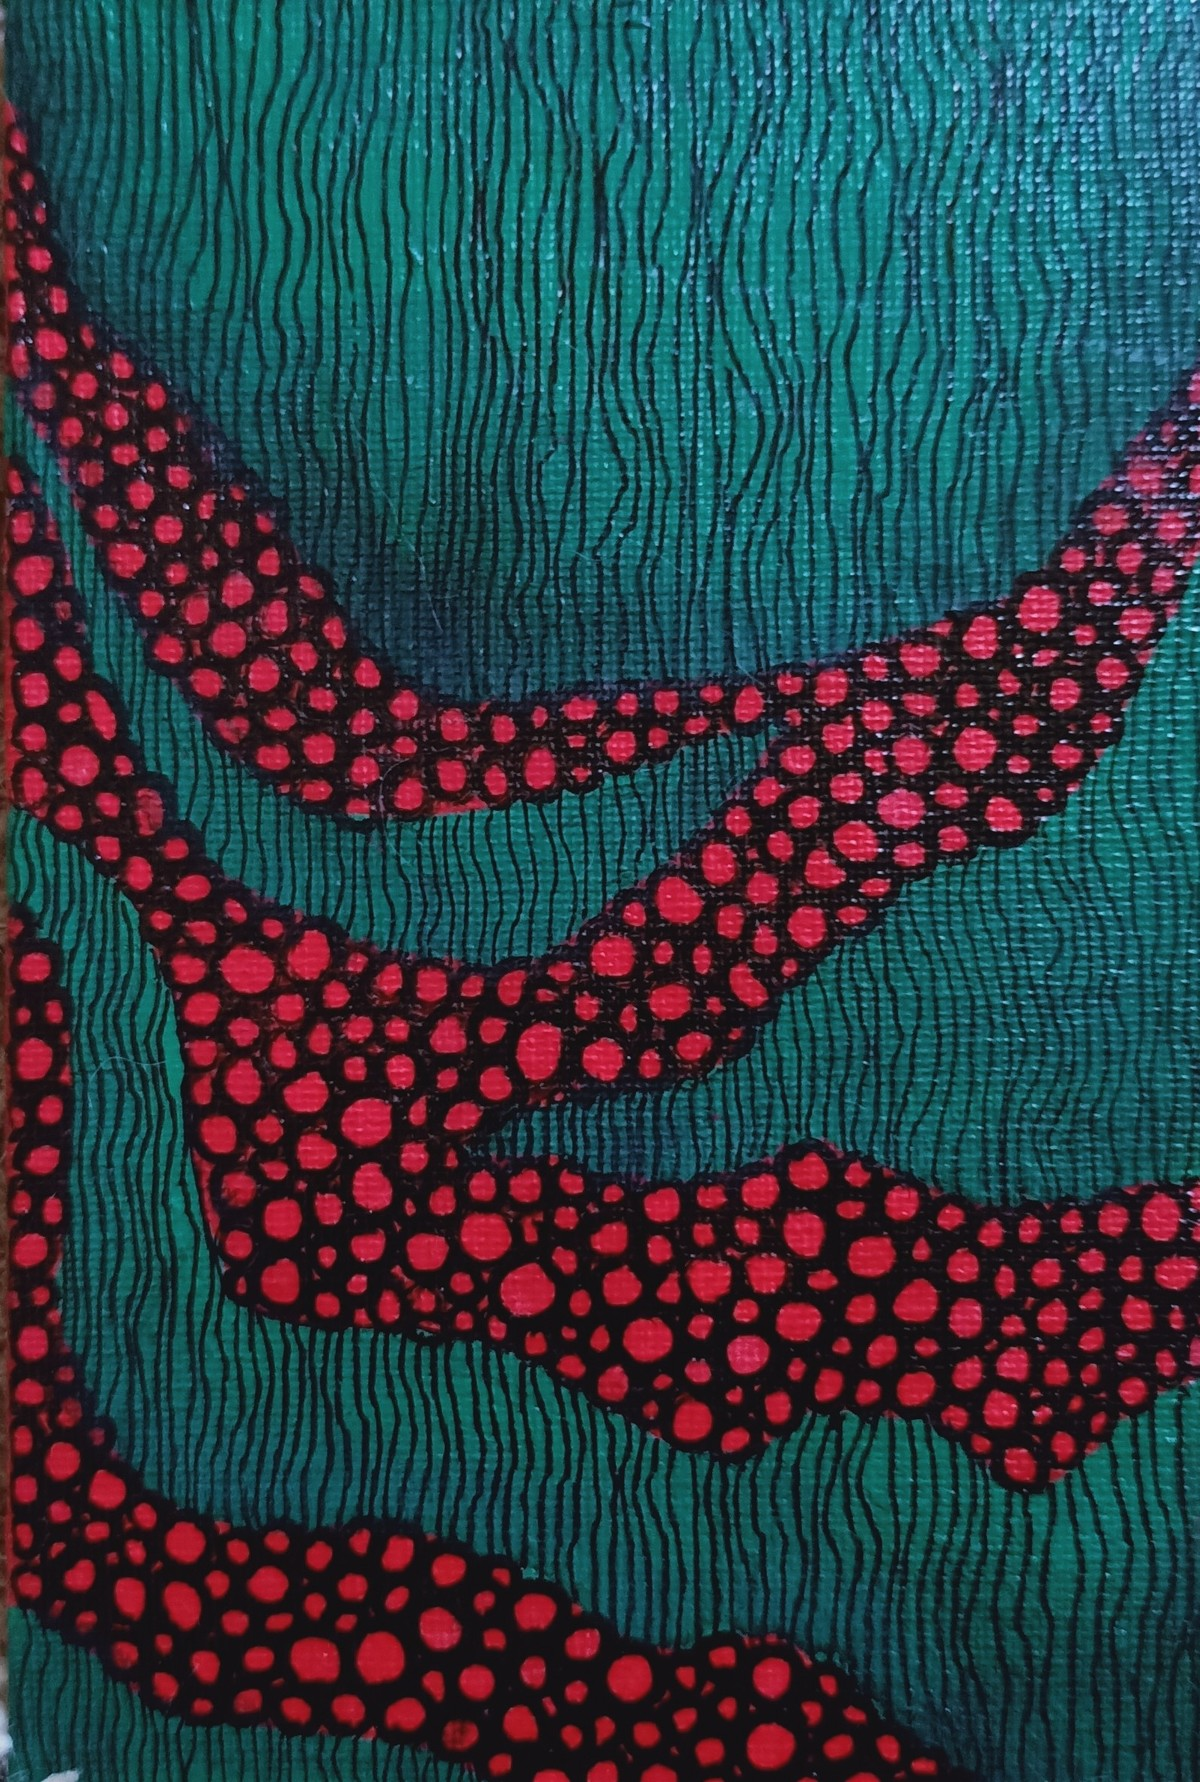 Green by Anissha Deshpande, Decorative, Illustration Painting, Acrylic on Canvas, Gable Green color